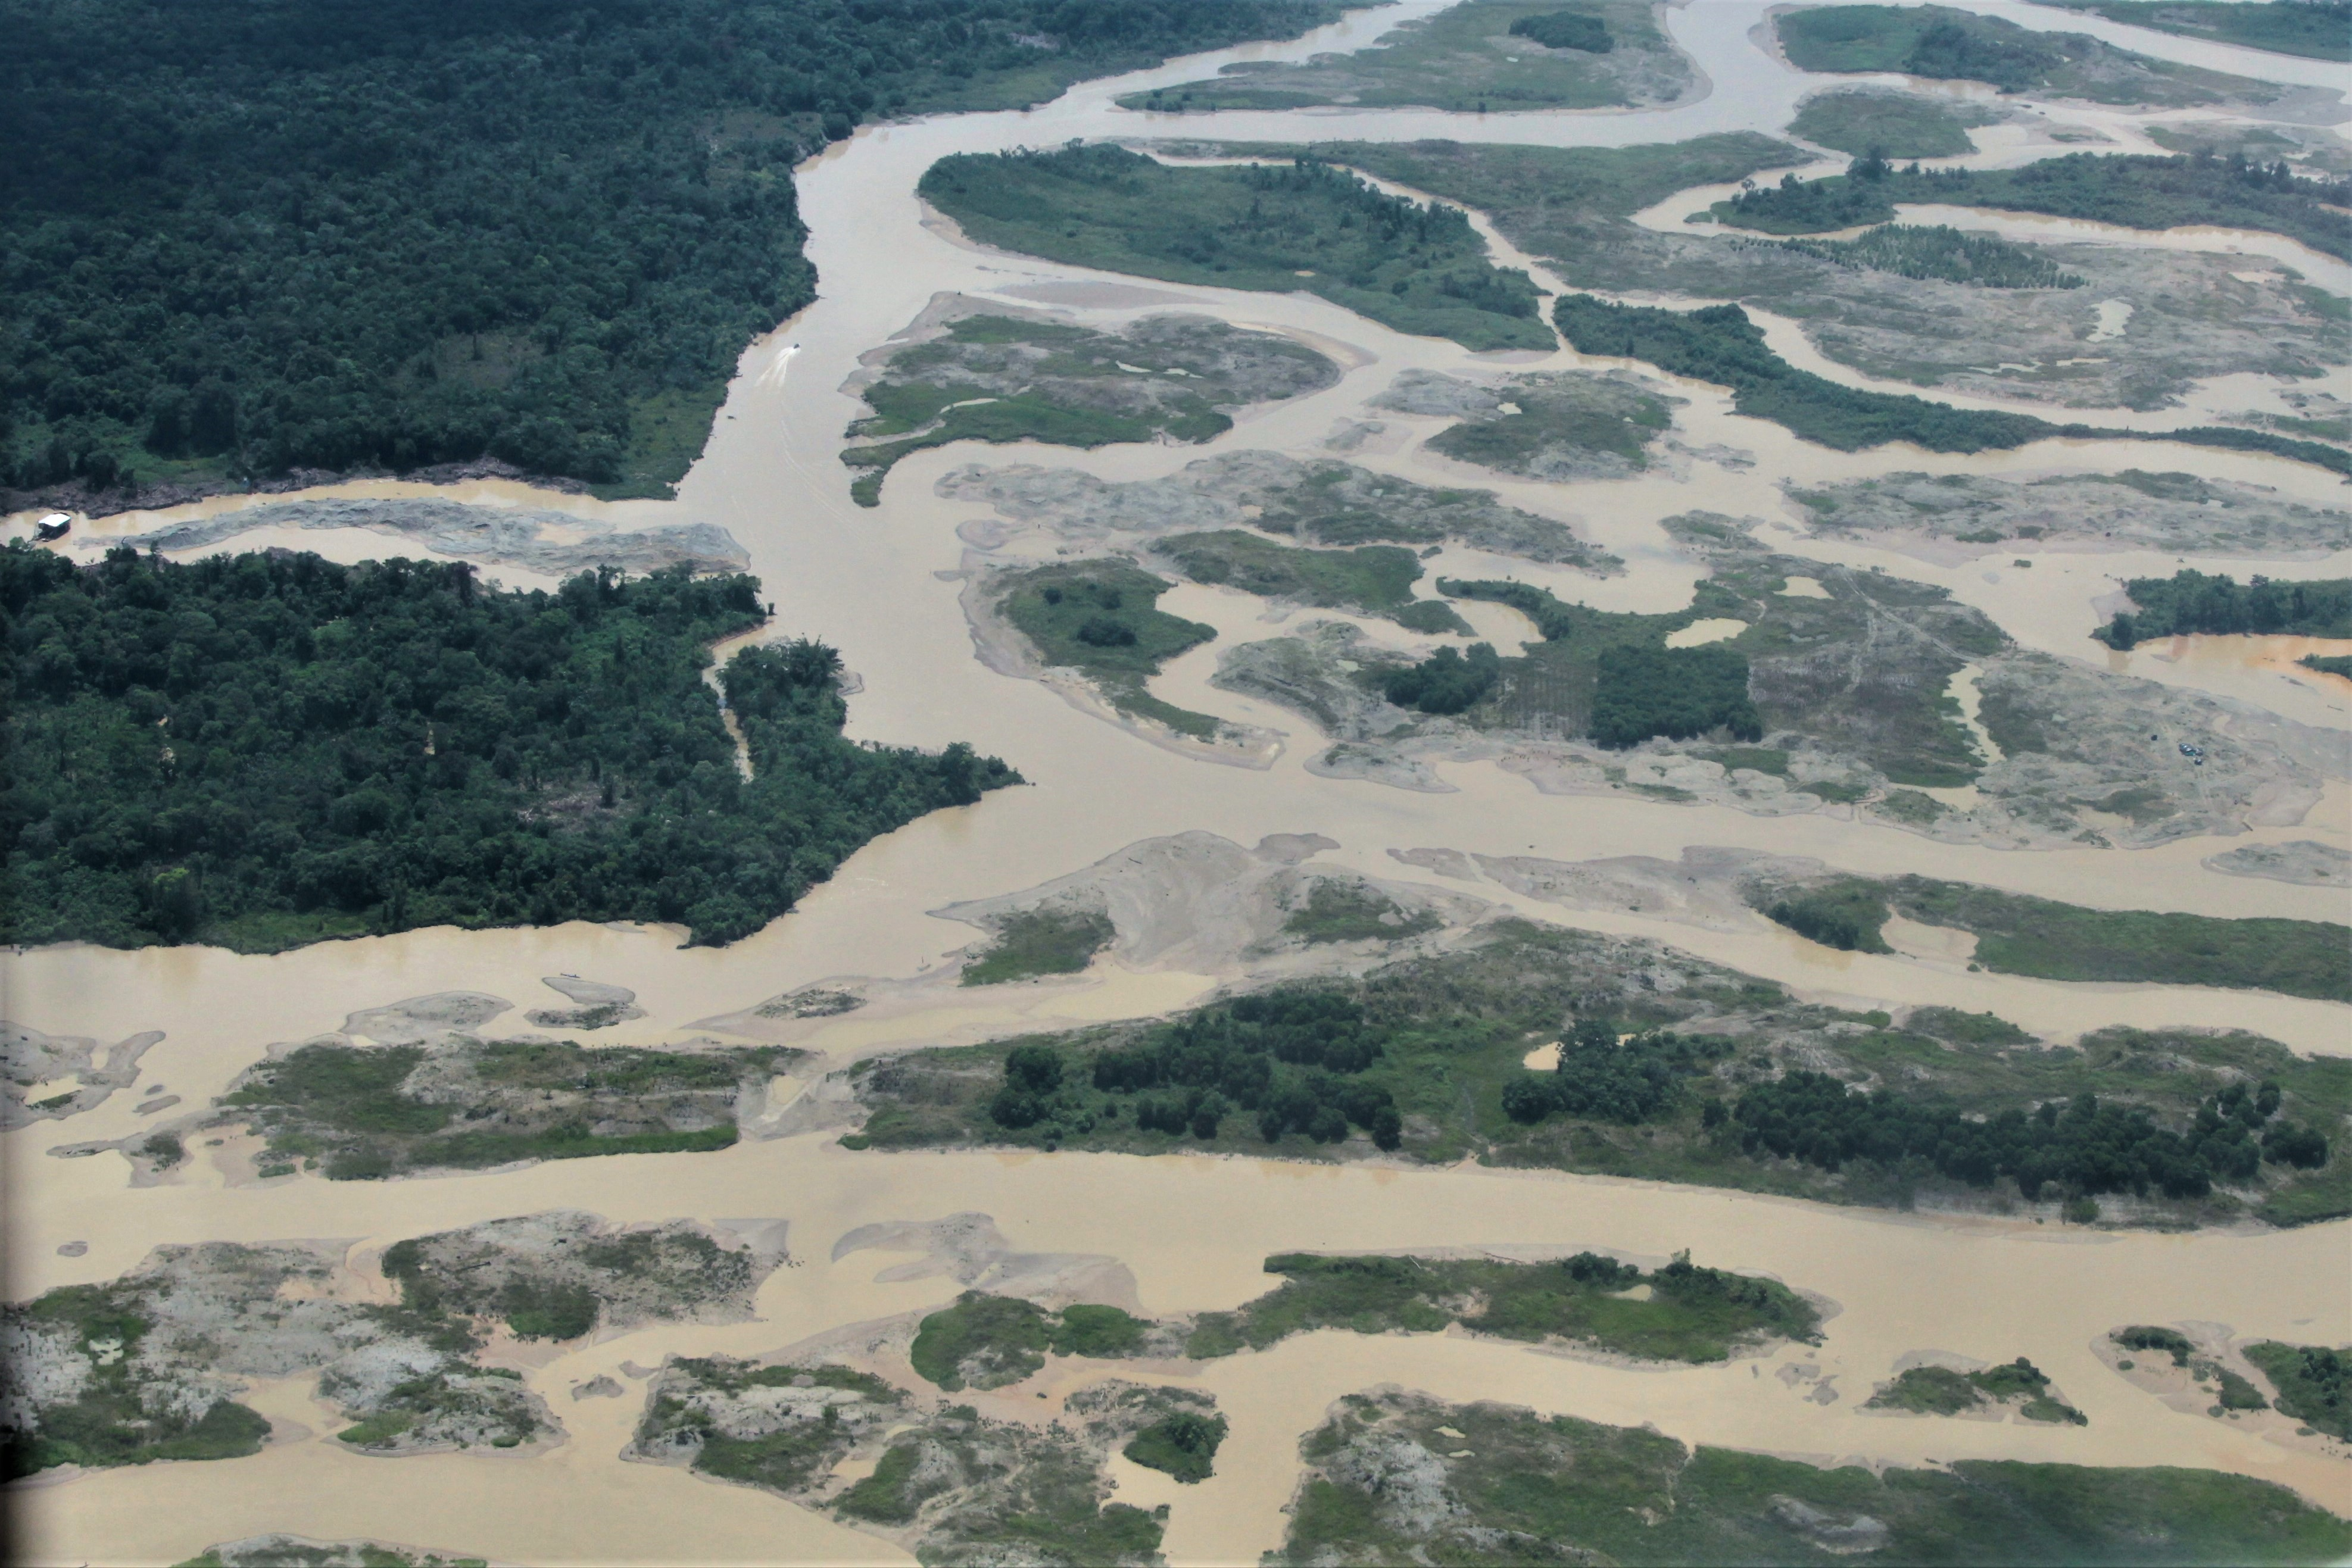 Extensive environmental damage from illegal mining on the Quito River, Chocó region